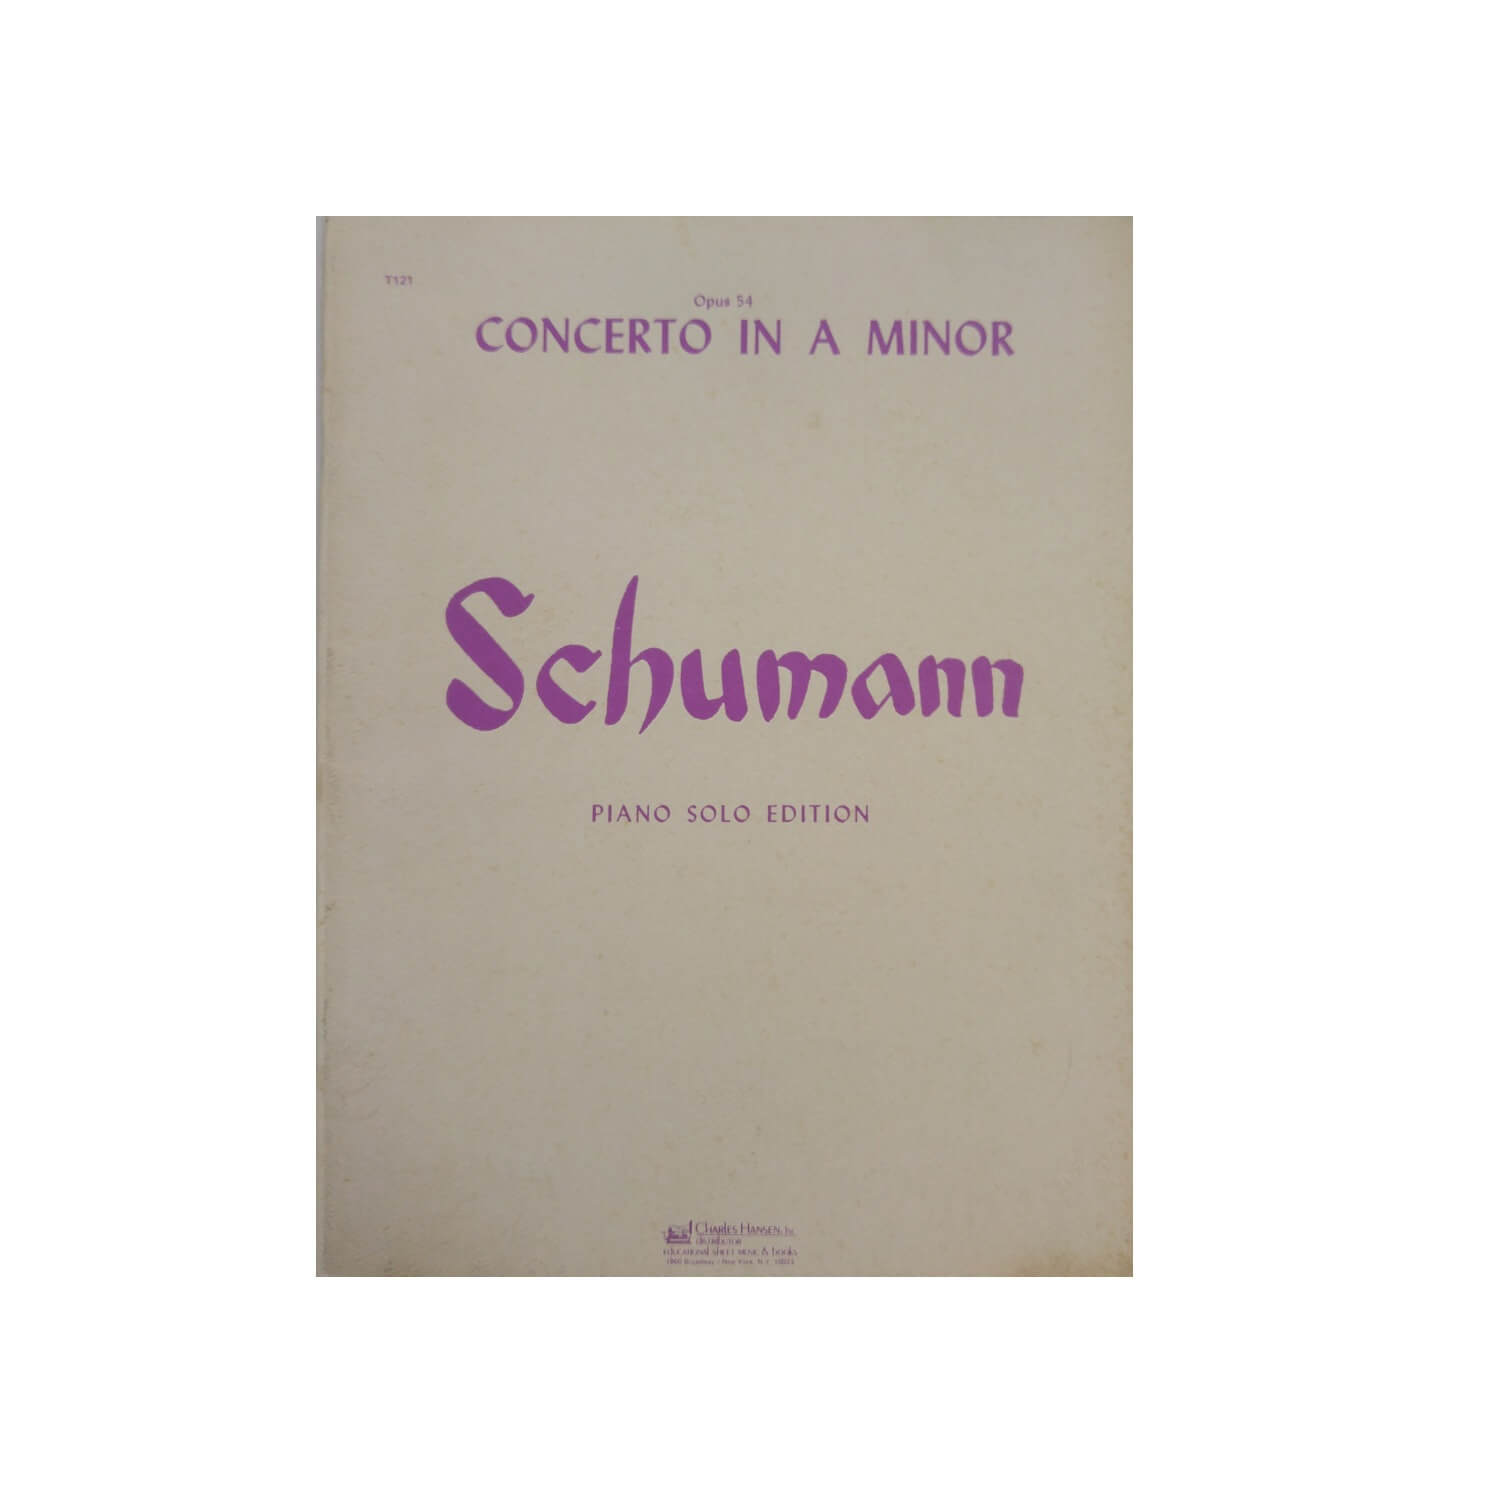 Concerto in a Minor Schumann Piano Solo Edition - Opus 54 - T121